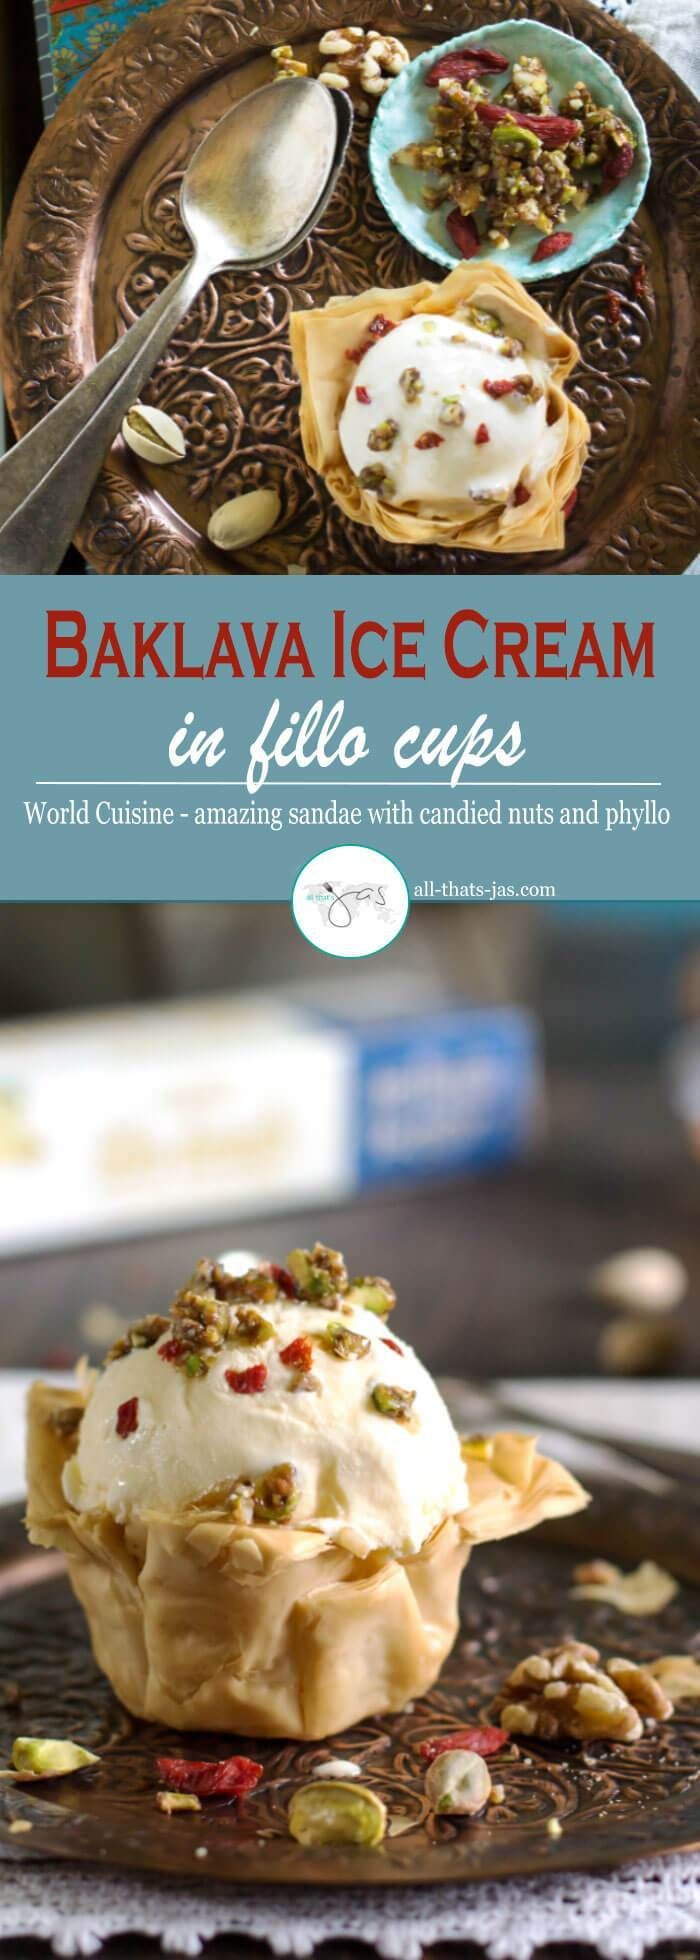 This baklava ice cream is the ultimate dessert for all baklava lovers. The buttery, flaky fillo cups made with phyllo dough and creamy vanilla ice cream with cinnamon candied nuts are meant to be together.